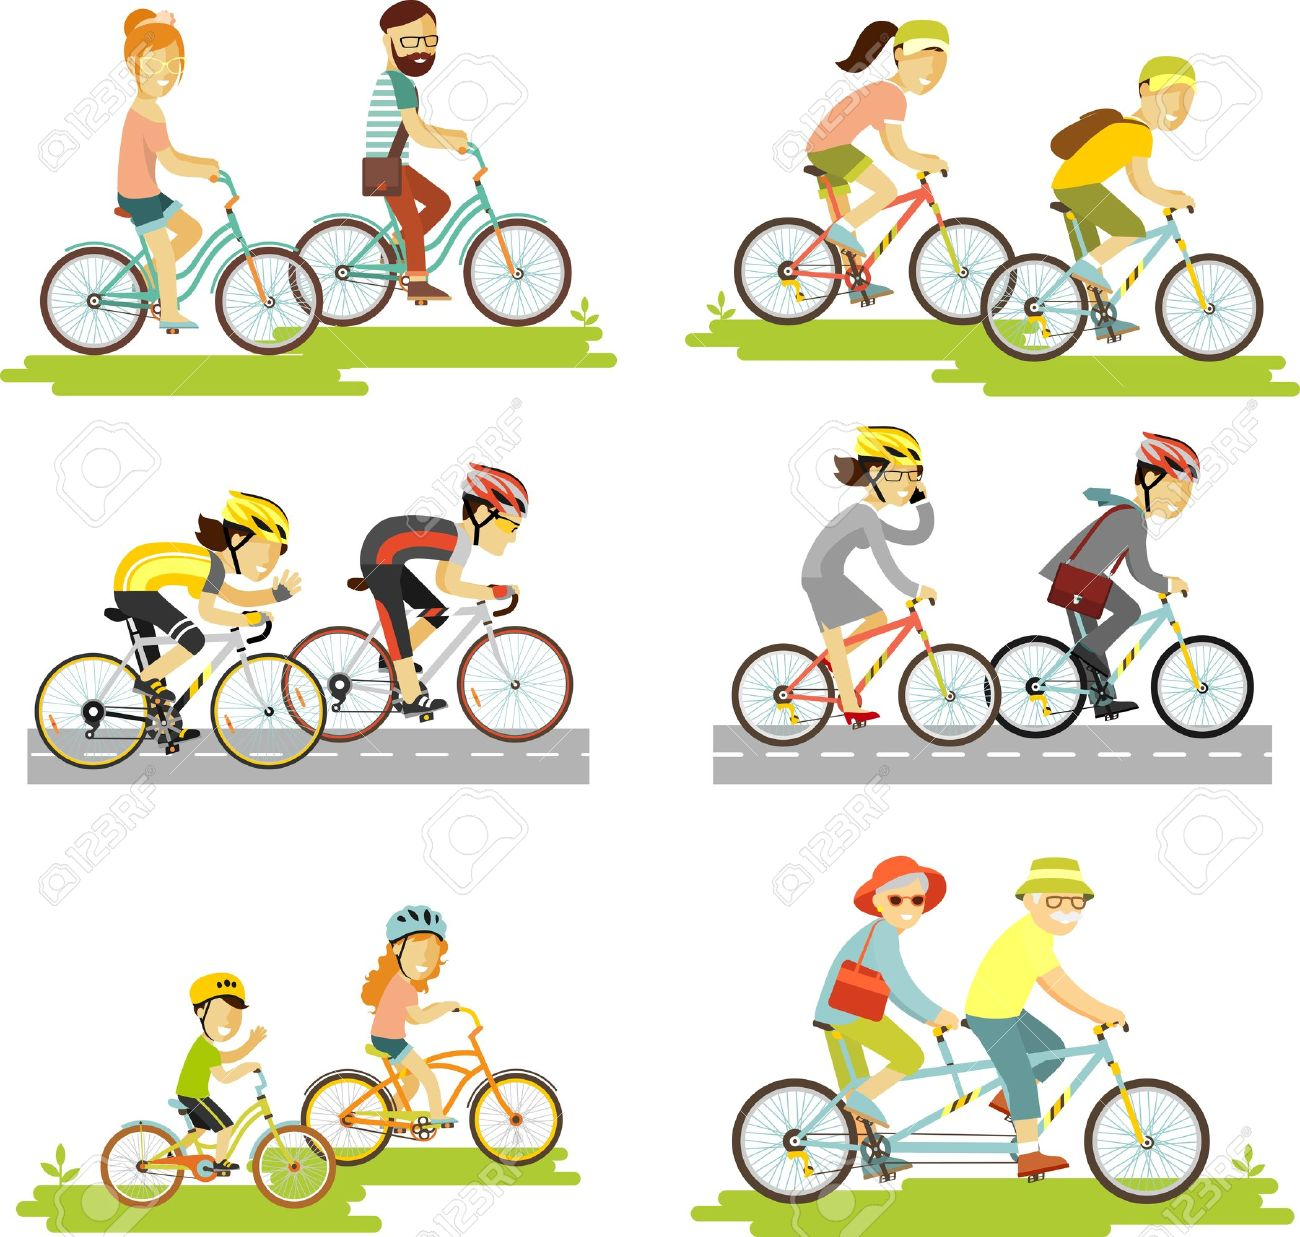 Cyclist man, woman, children, hipster, older, racing cyclist on bike and tandem - 50995867